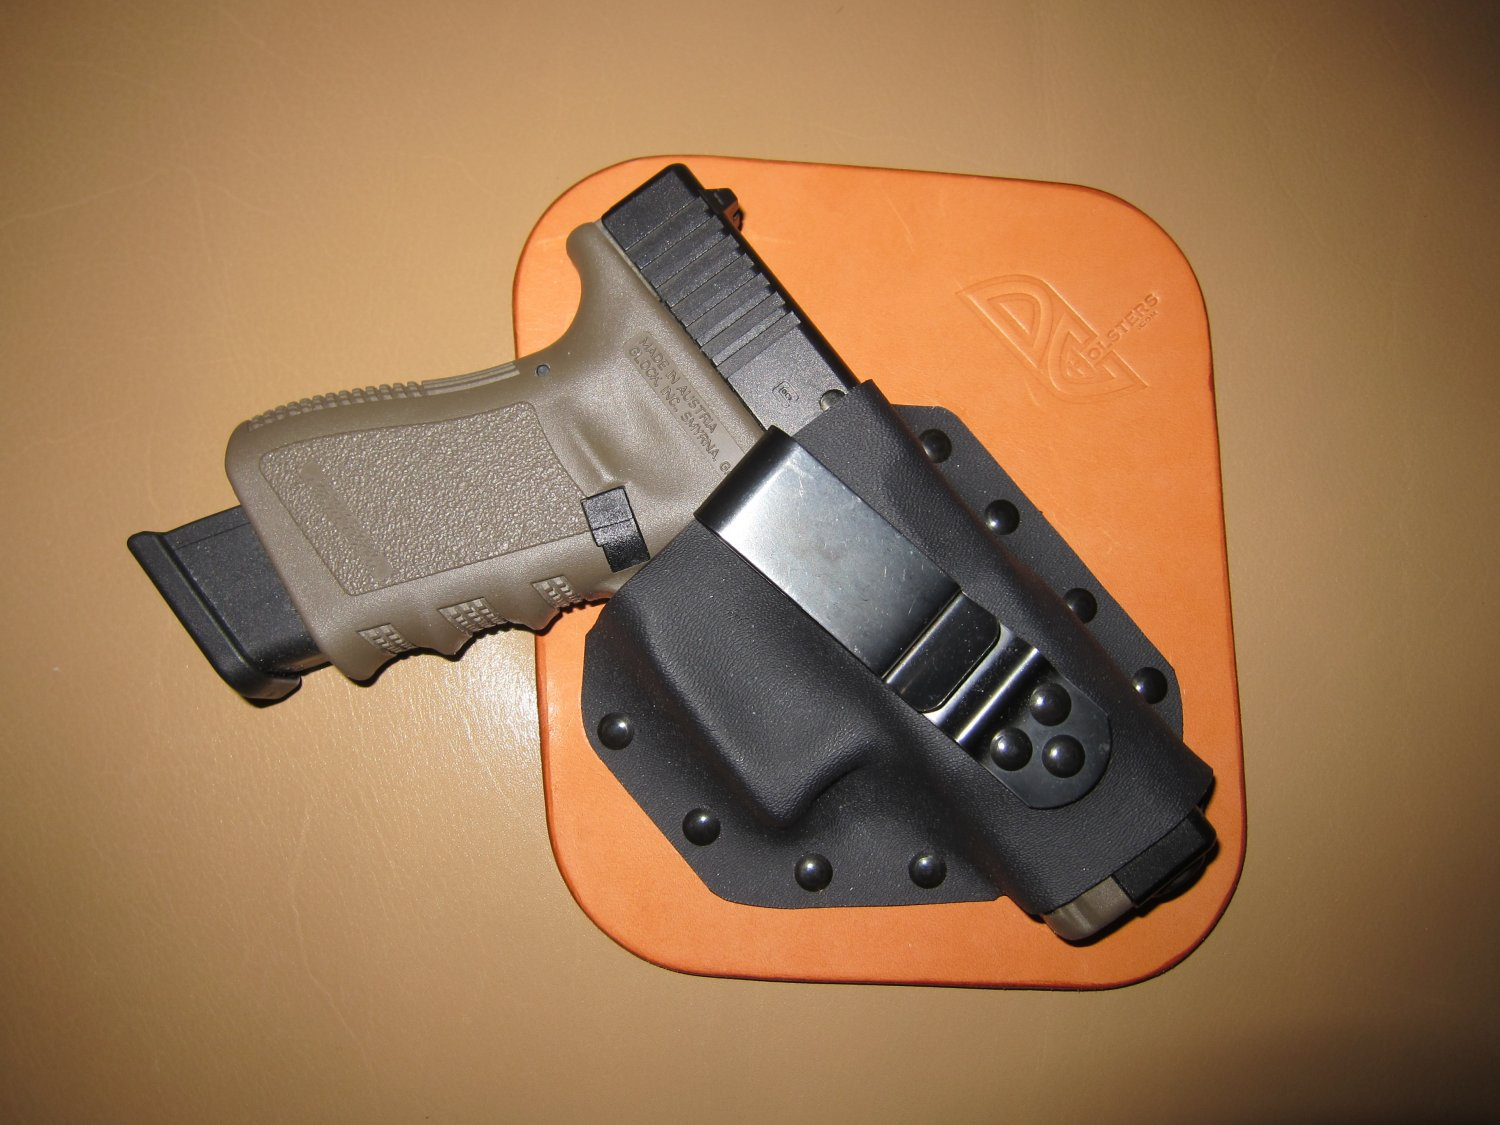 DC Holsters IWB Concealment Holster 1 <!  :en  >DC Holsters Leather/Kydex Hybrid Ultra Concealment Tactical Pistol Holsters for Concealed Carry (CCW) and Deep Cover Use: Best Ultra Covert Inside the Waistband (IWB) Holsters Out There?<!  :  >